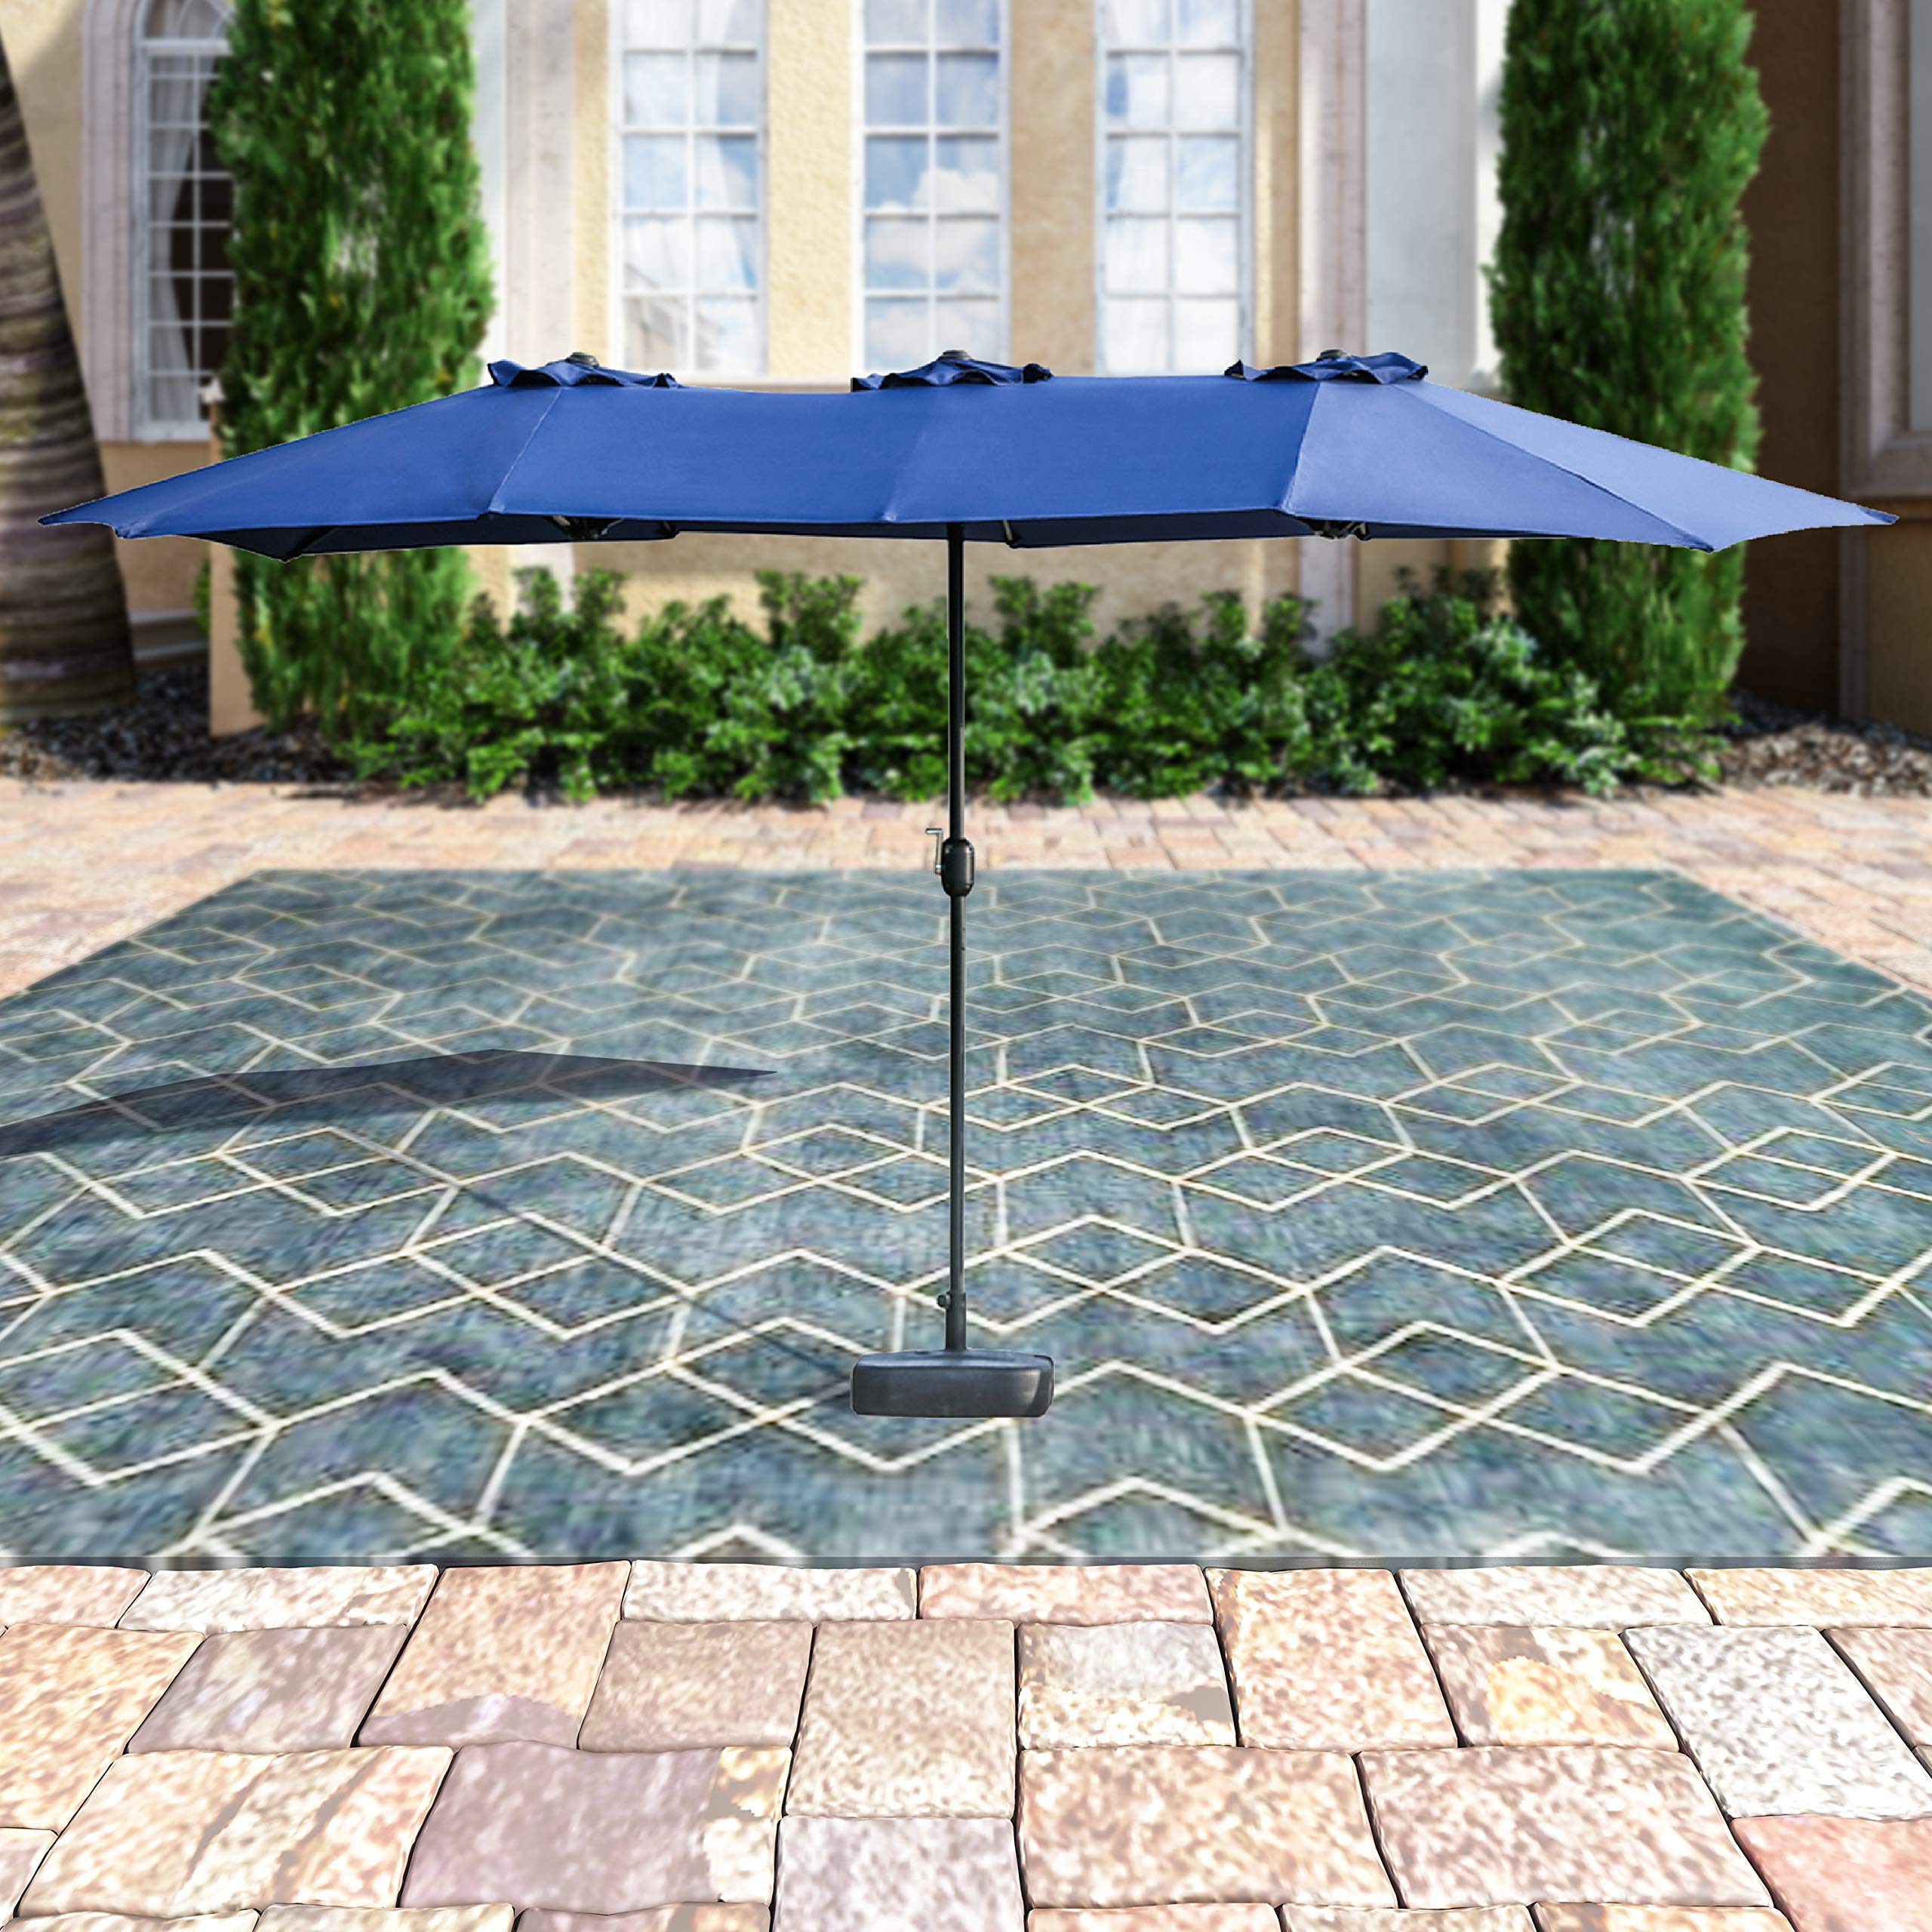 Patio Festival ® Double-Sided Outdoor Umbrella,15x9 ft Aluminum Garden Large Umbrella with Tilt and Crank for Market,Camping,Swimming Pool (Middle, Blue) by Patio Festival ®